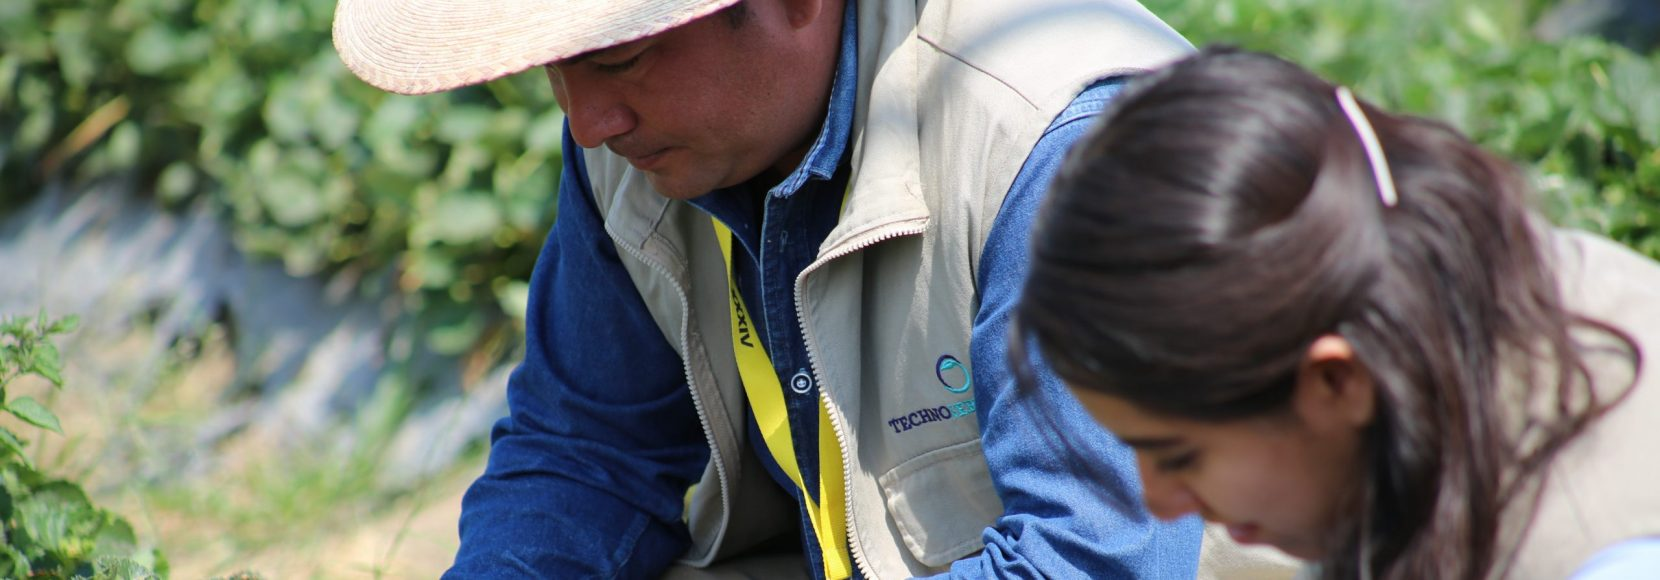 TechnoServe employee leads income generating training in Mexico